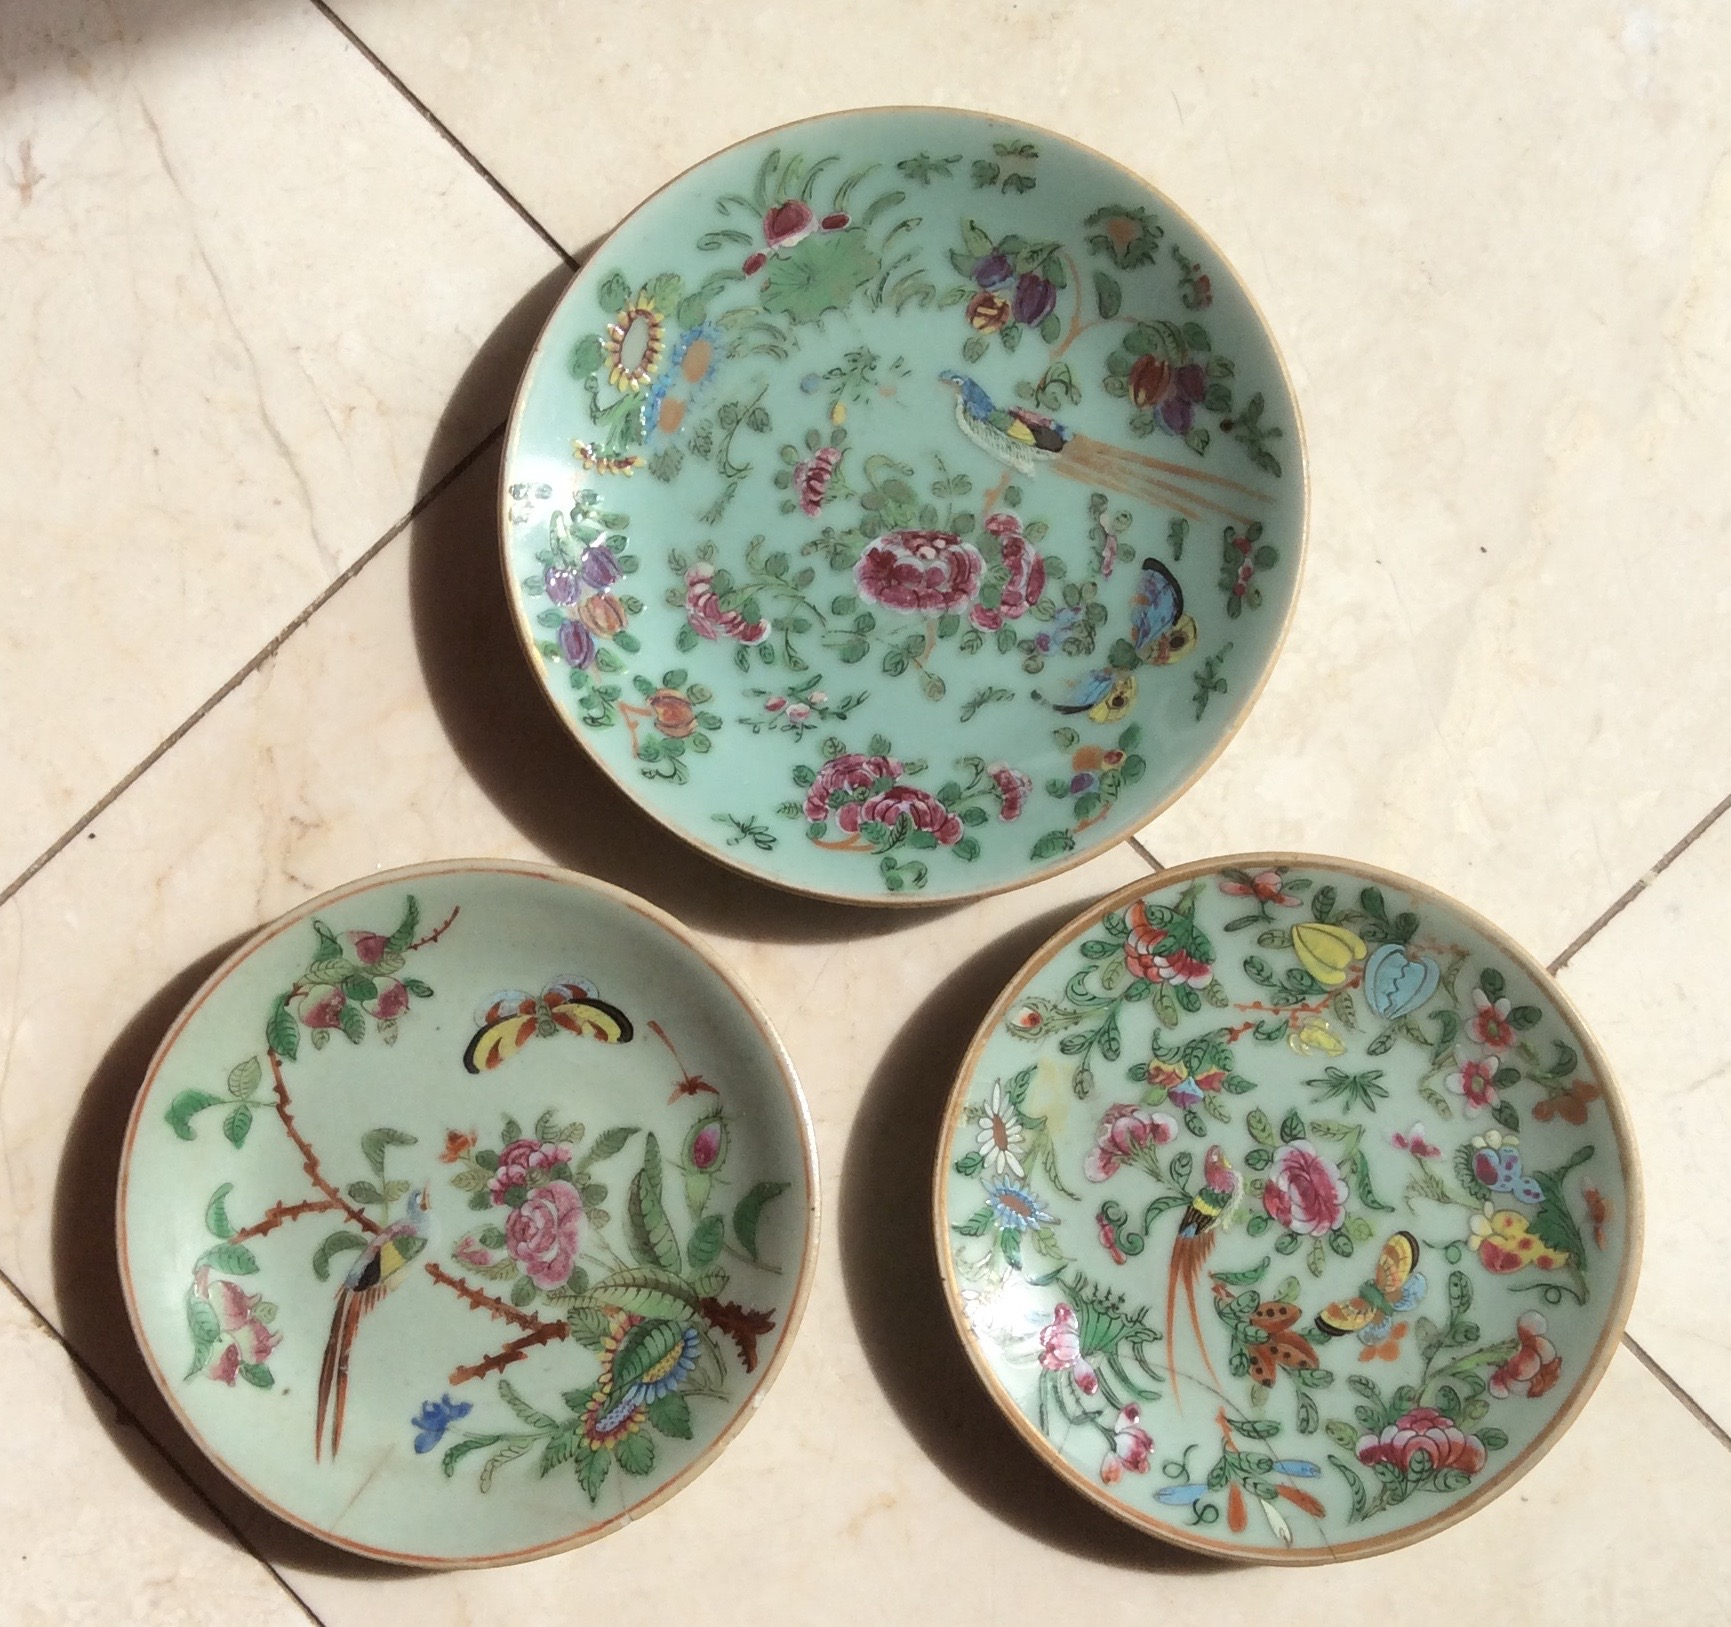 Lot 18 - Eight celadon porcelain plates some a/f